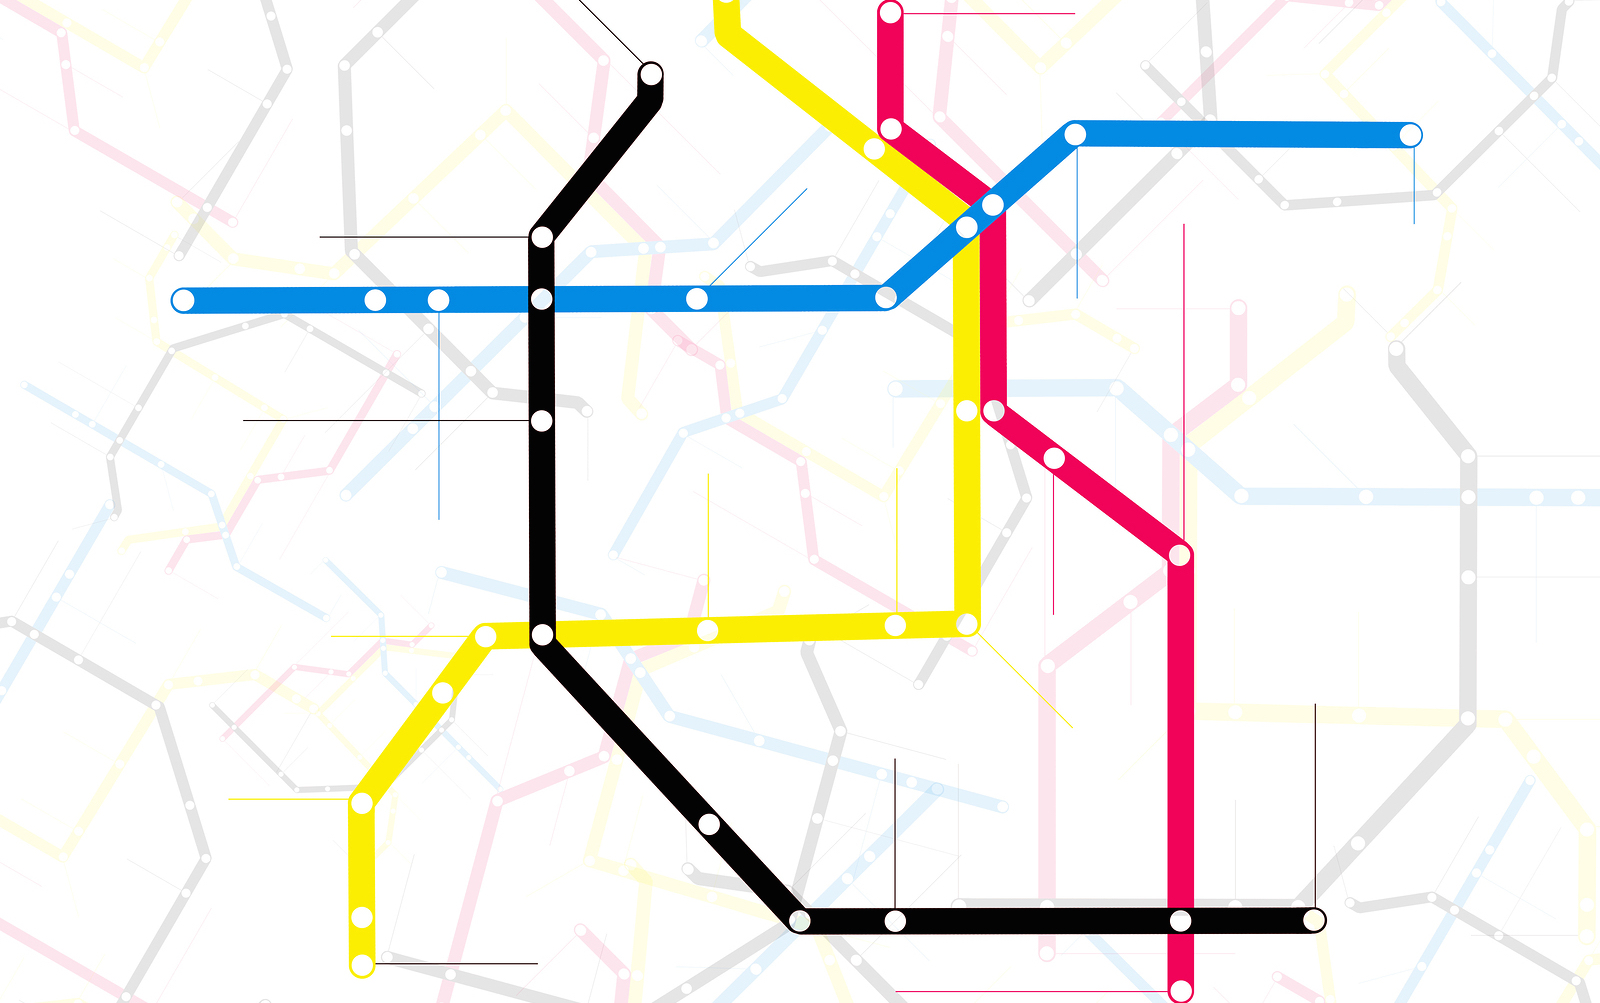 Subway map with grey streets and colored tubes